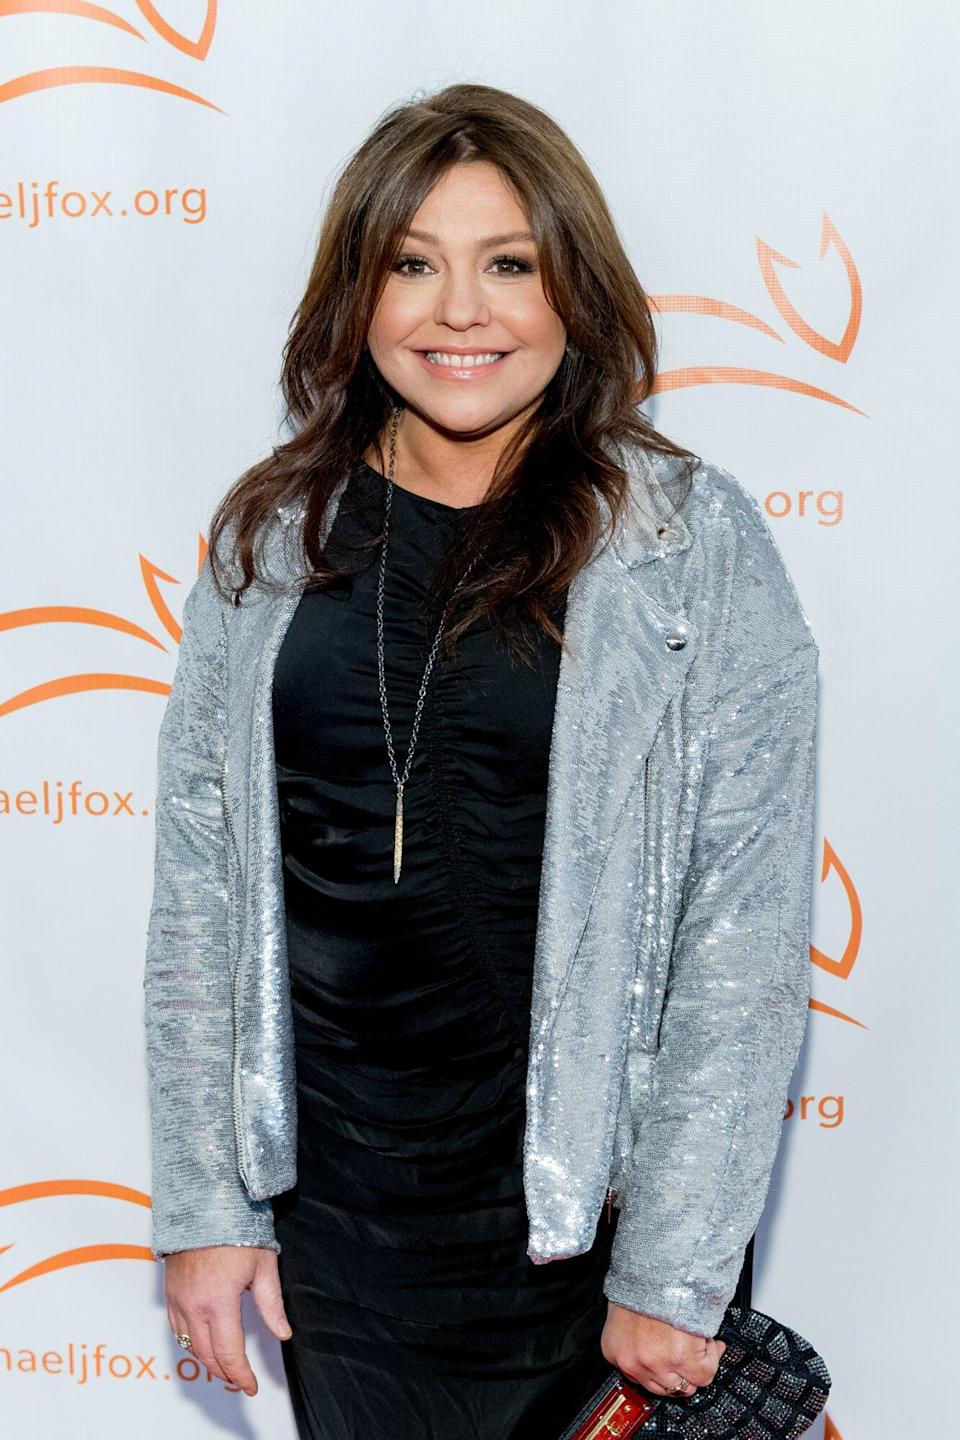 Rachael Ray Reflects on House Fire in Heartfelt Editor's Letter: 'Mindful of Just How Lucky I Am'